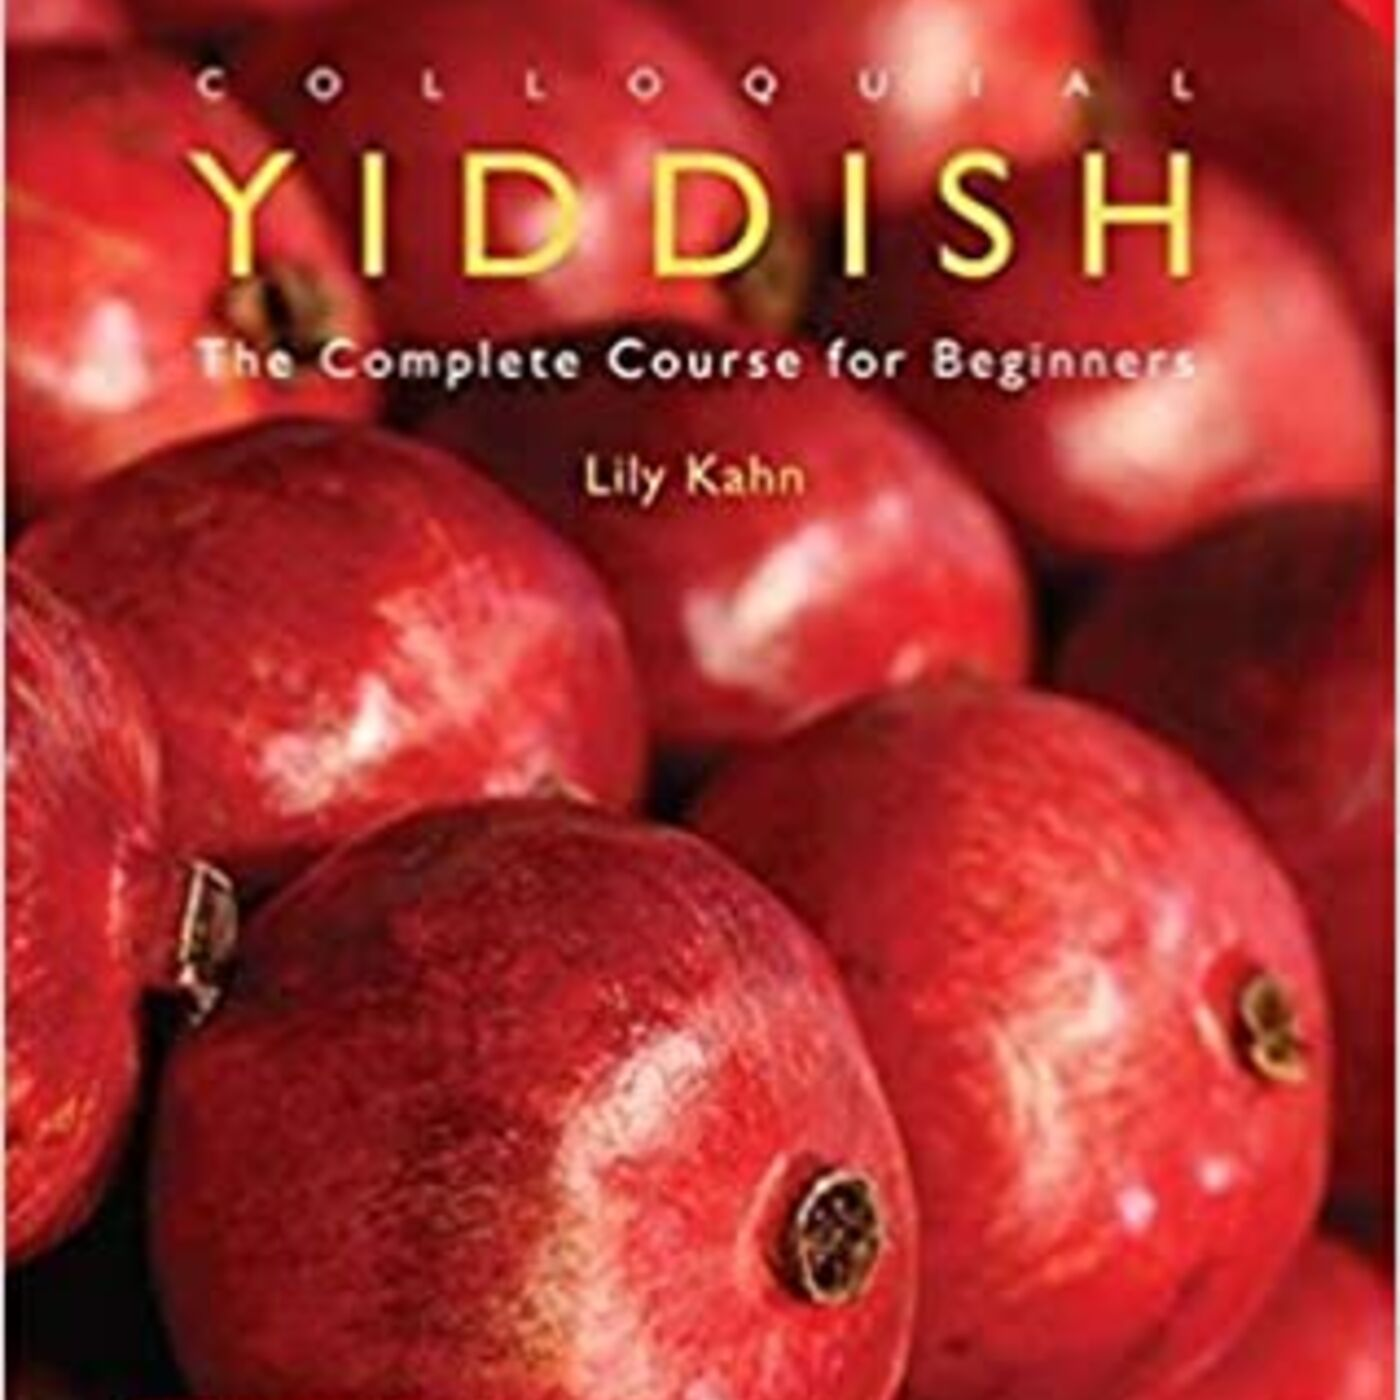 Yiddish: Strange but Familiar